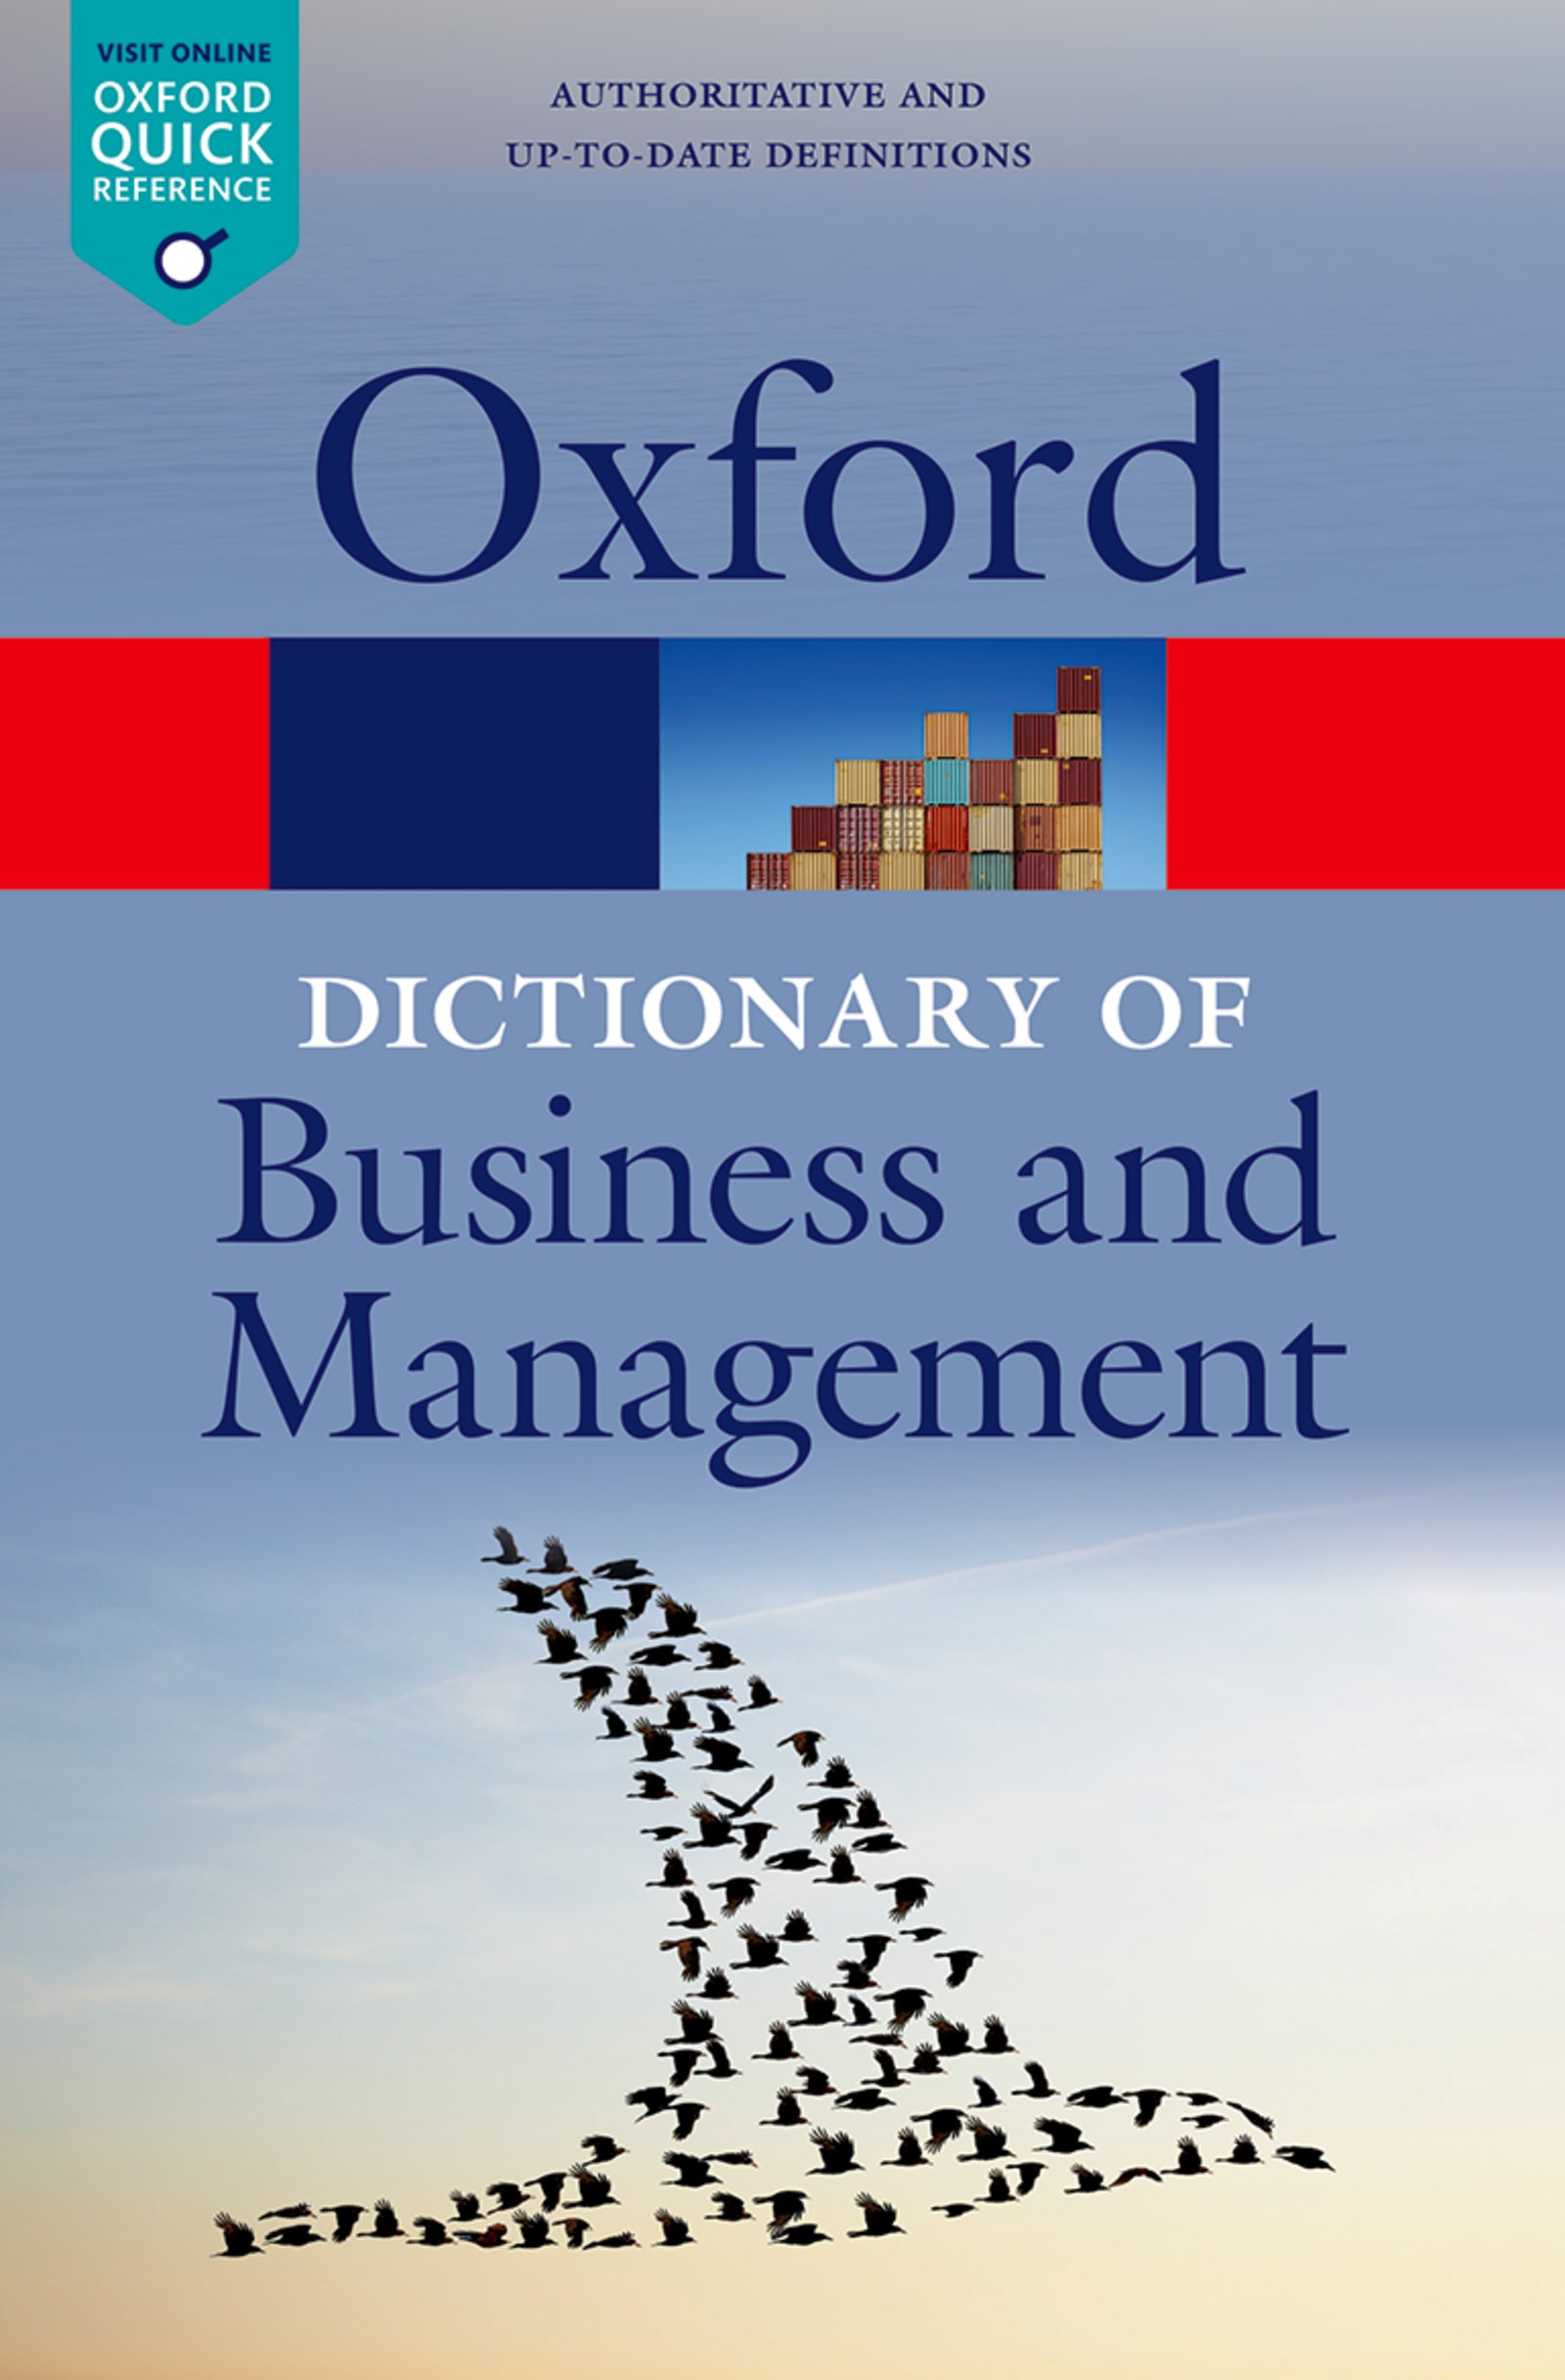 Download Ebook A Dictionary of Business and Management (6th ed.) by Jonathan Law Pdf